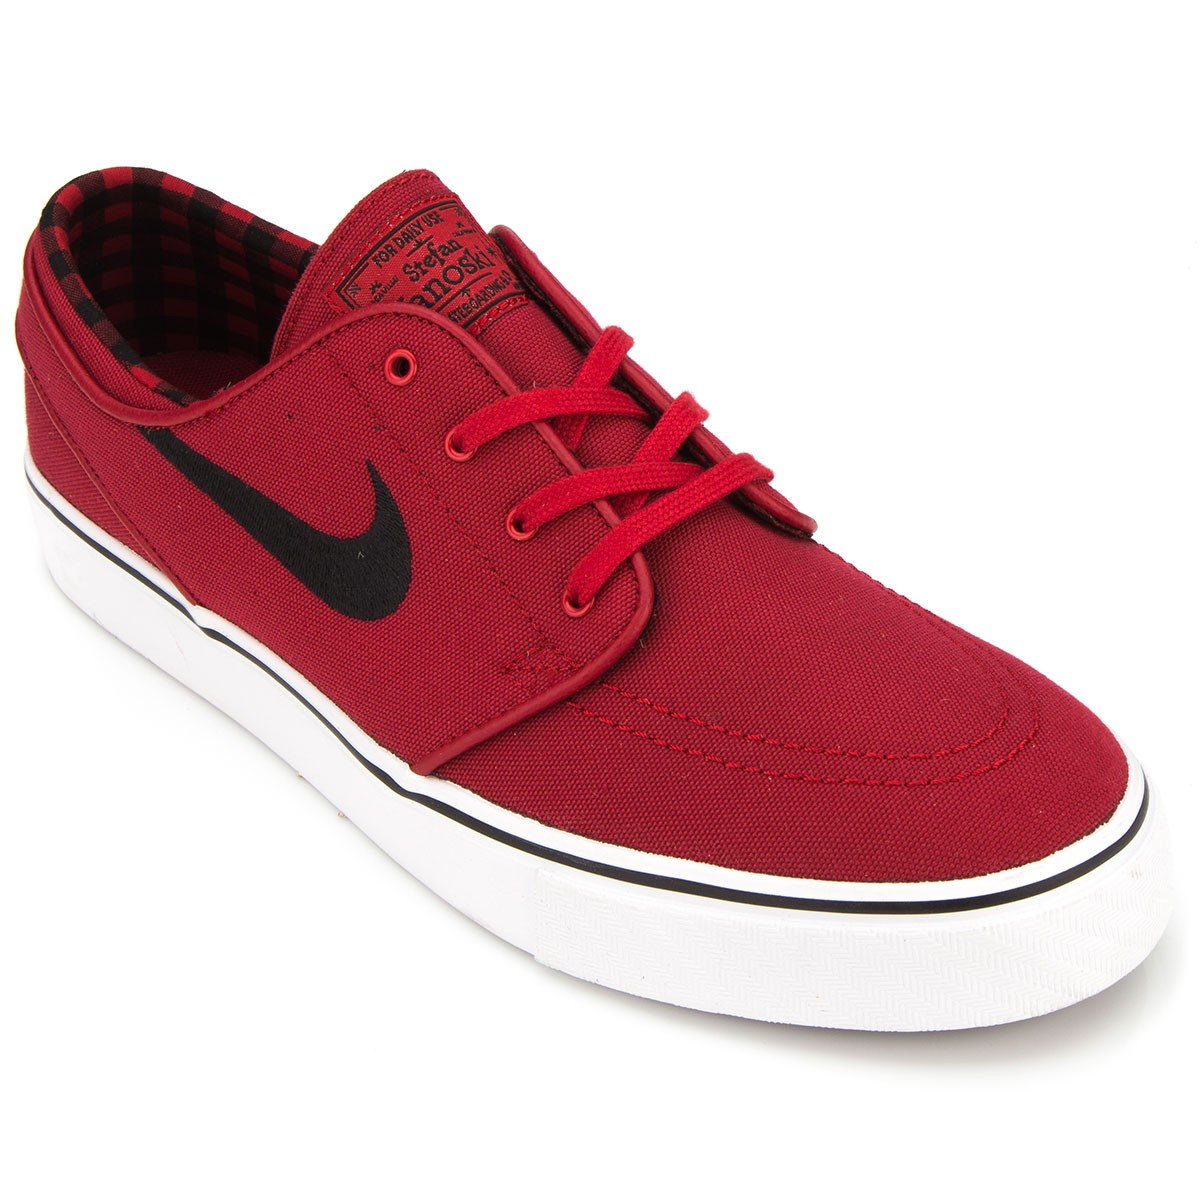 Nike Zoom Stefan Janoski Canvas Shoes - Red White Black - 6.0 a4a613bfe